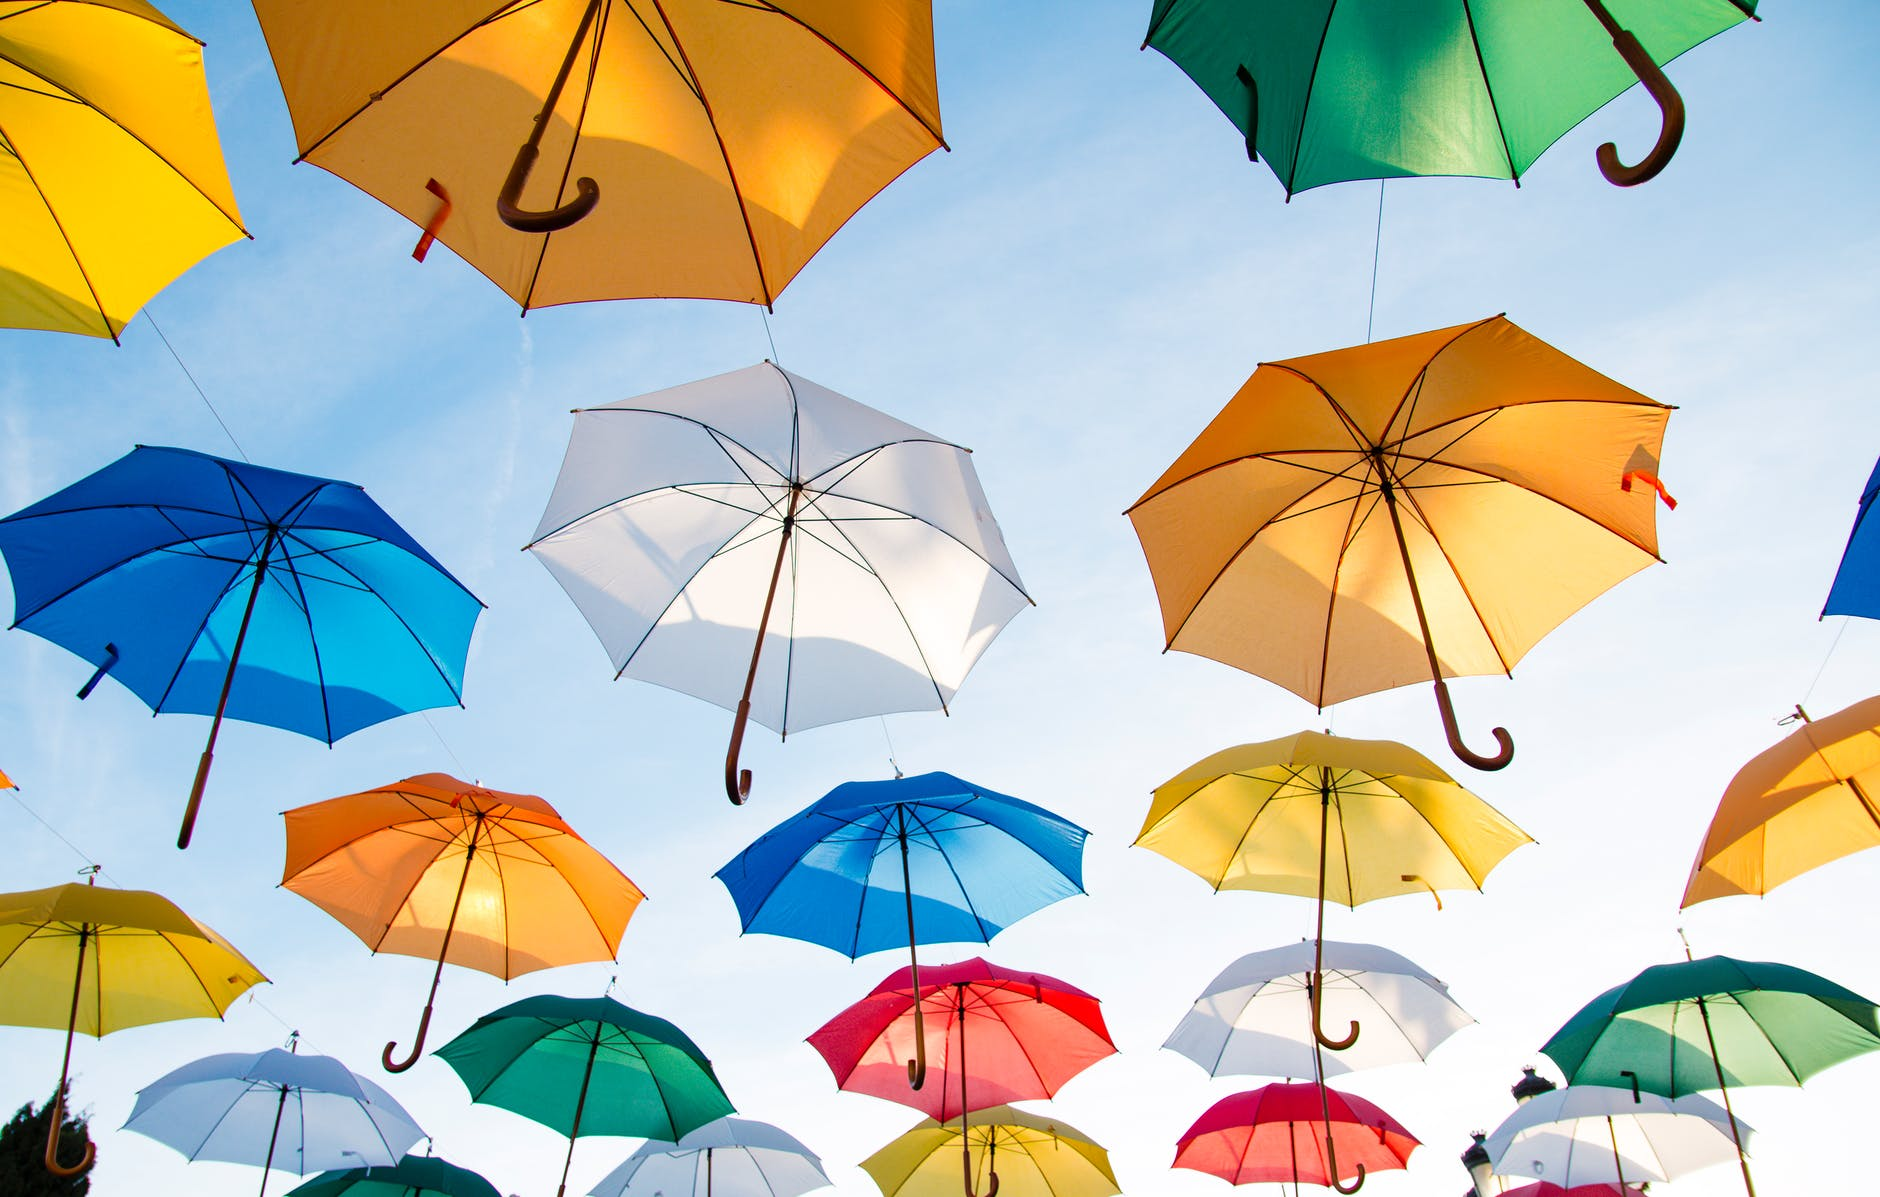 assorted color straight umbrella hanging on black wire